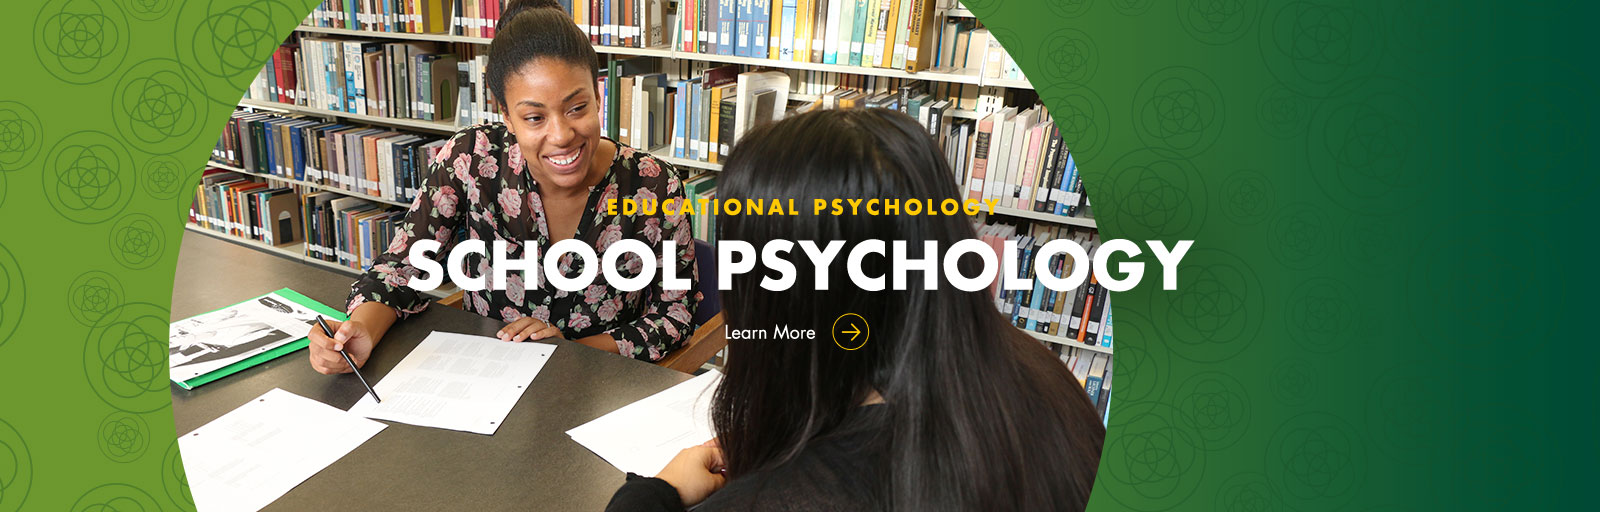 soe-mc_edp-School-Psychology